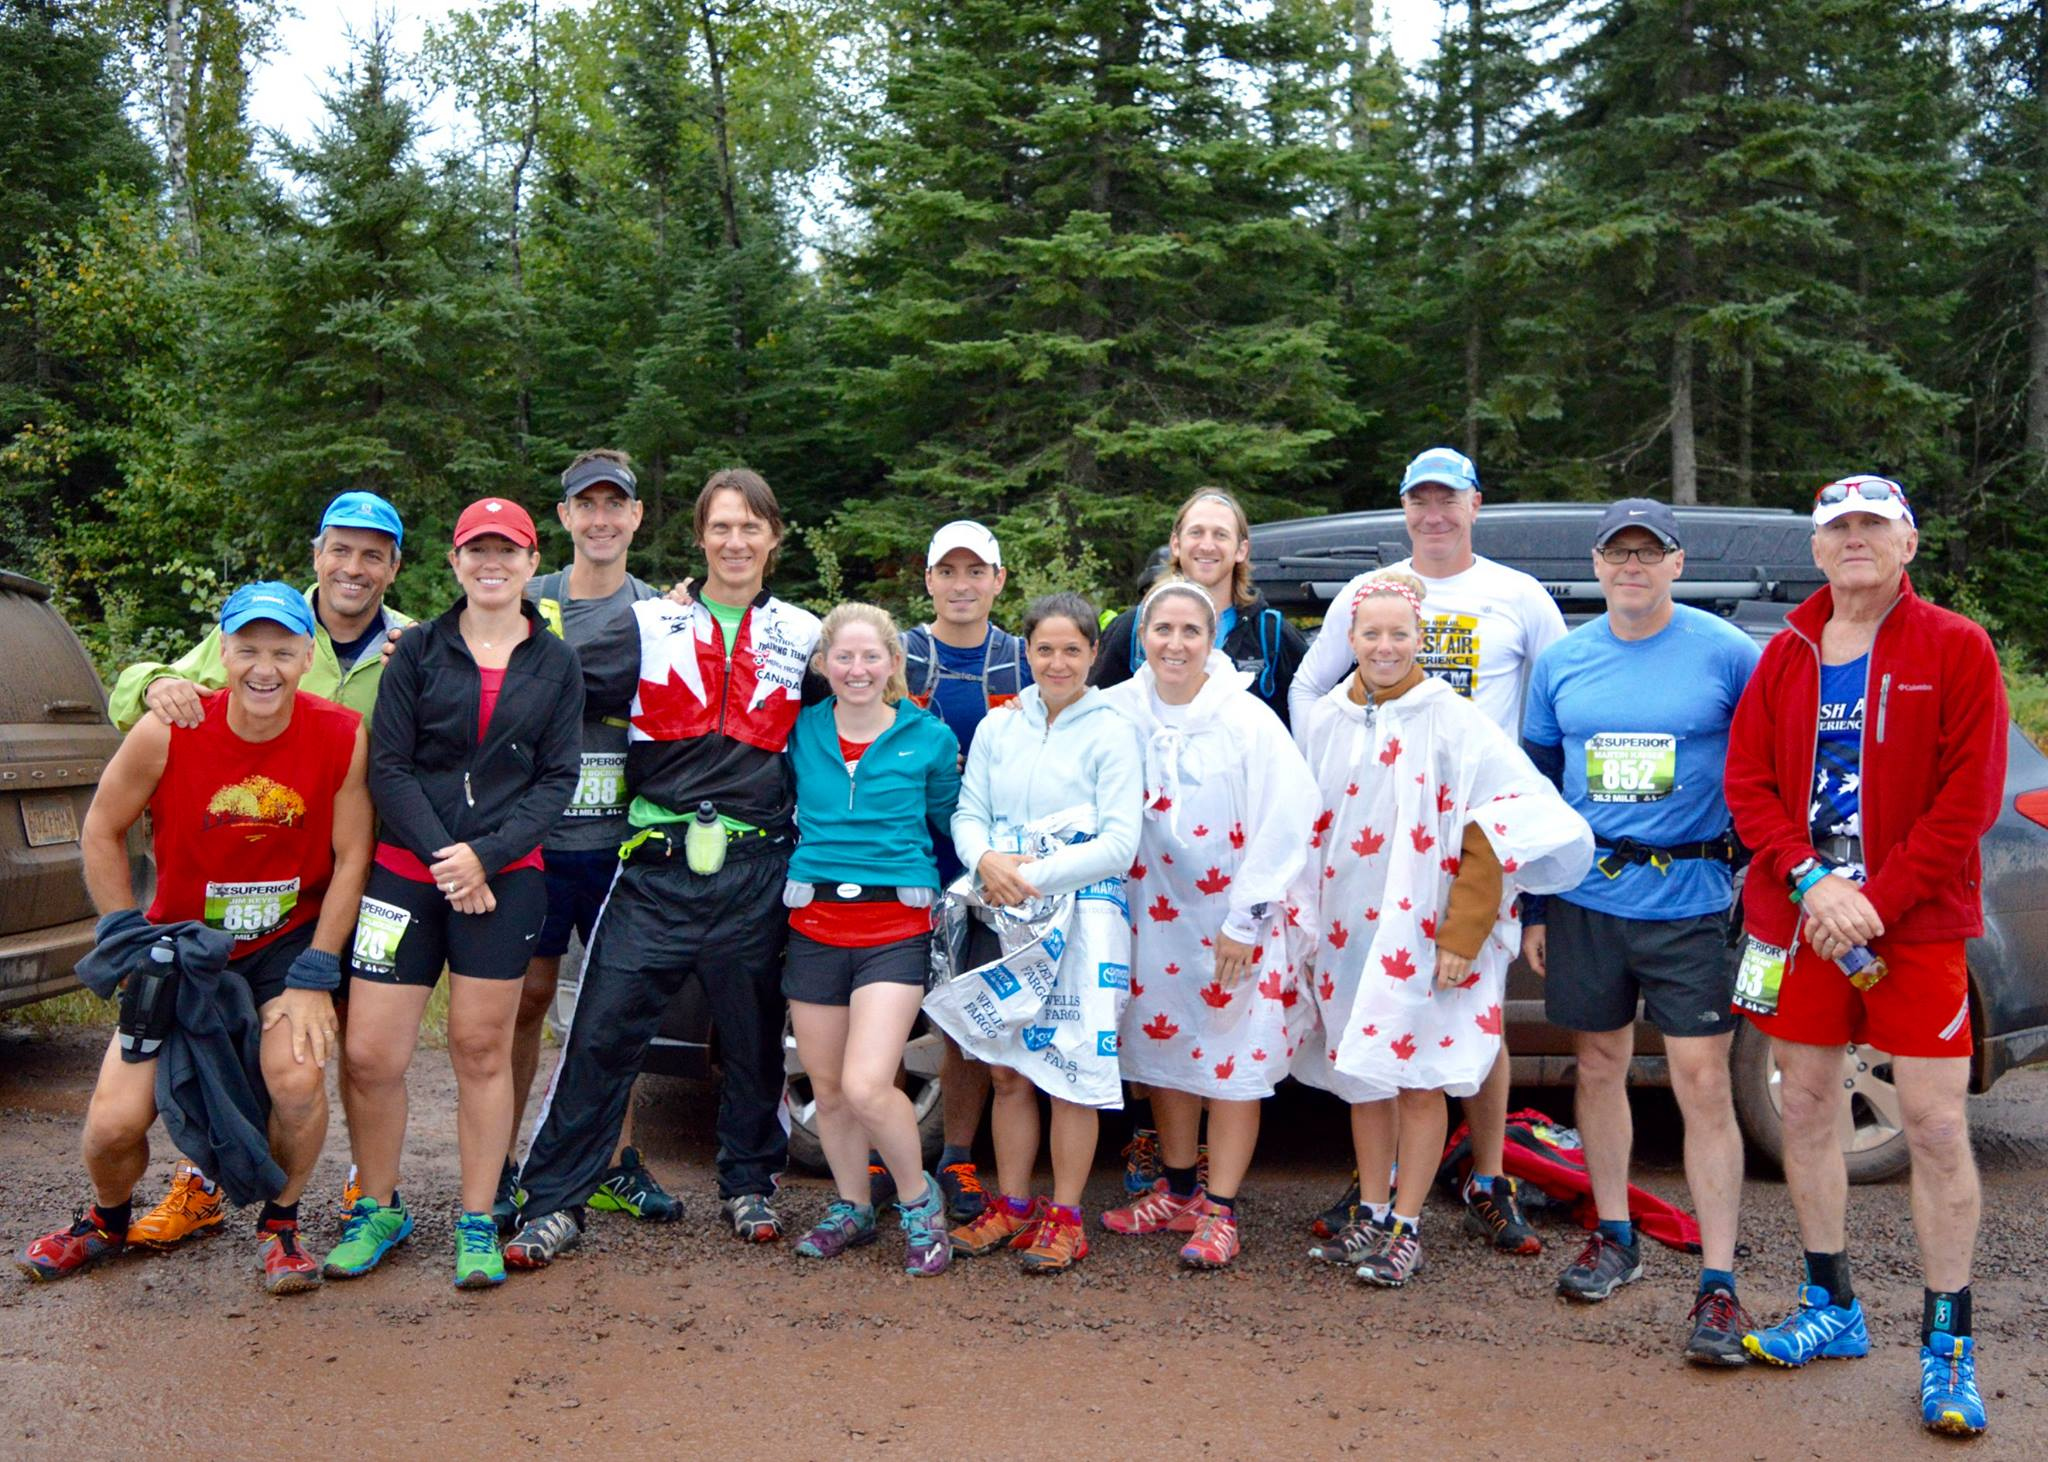 Thunder Bay group_pre race pic_SuperiorTrailMarathon_2016